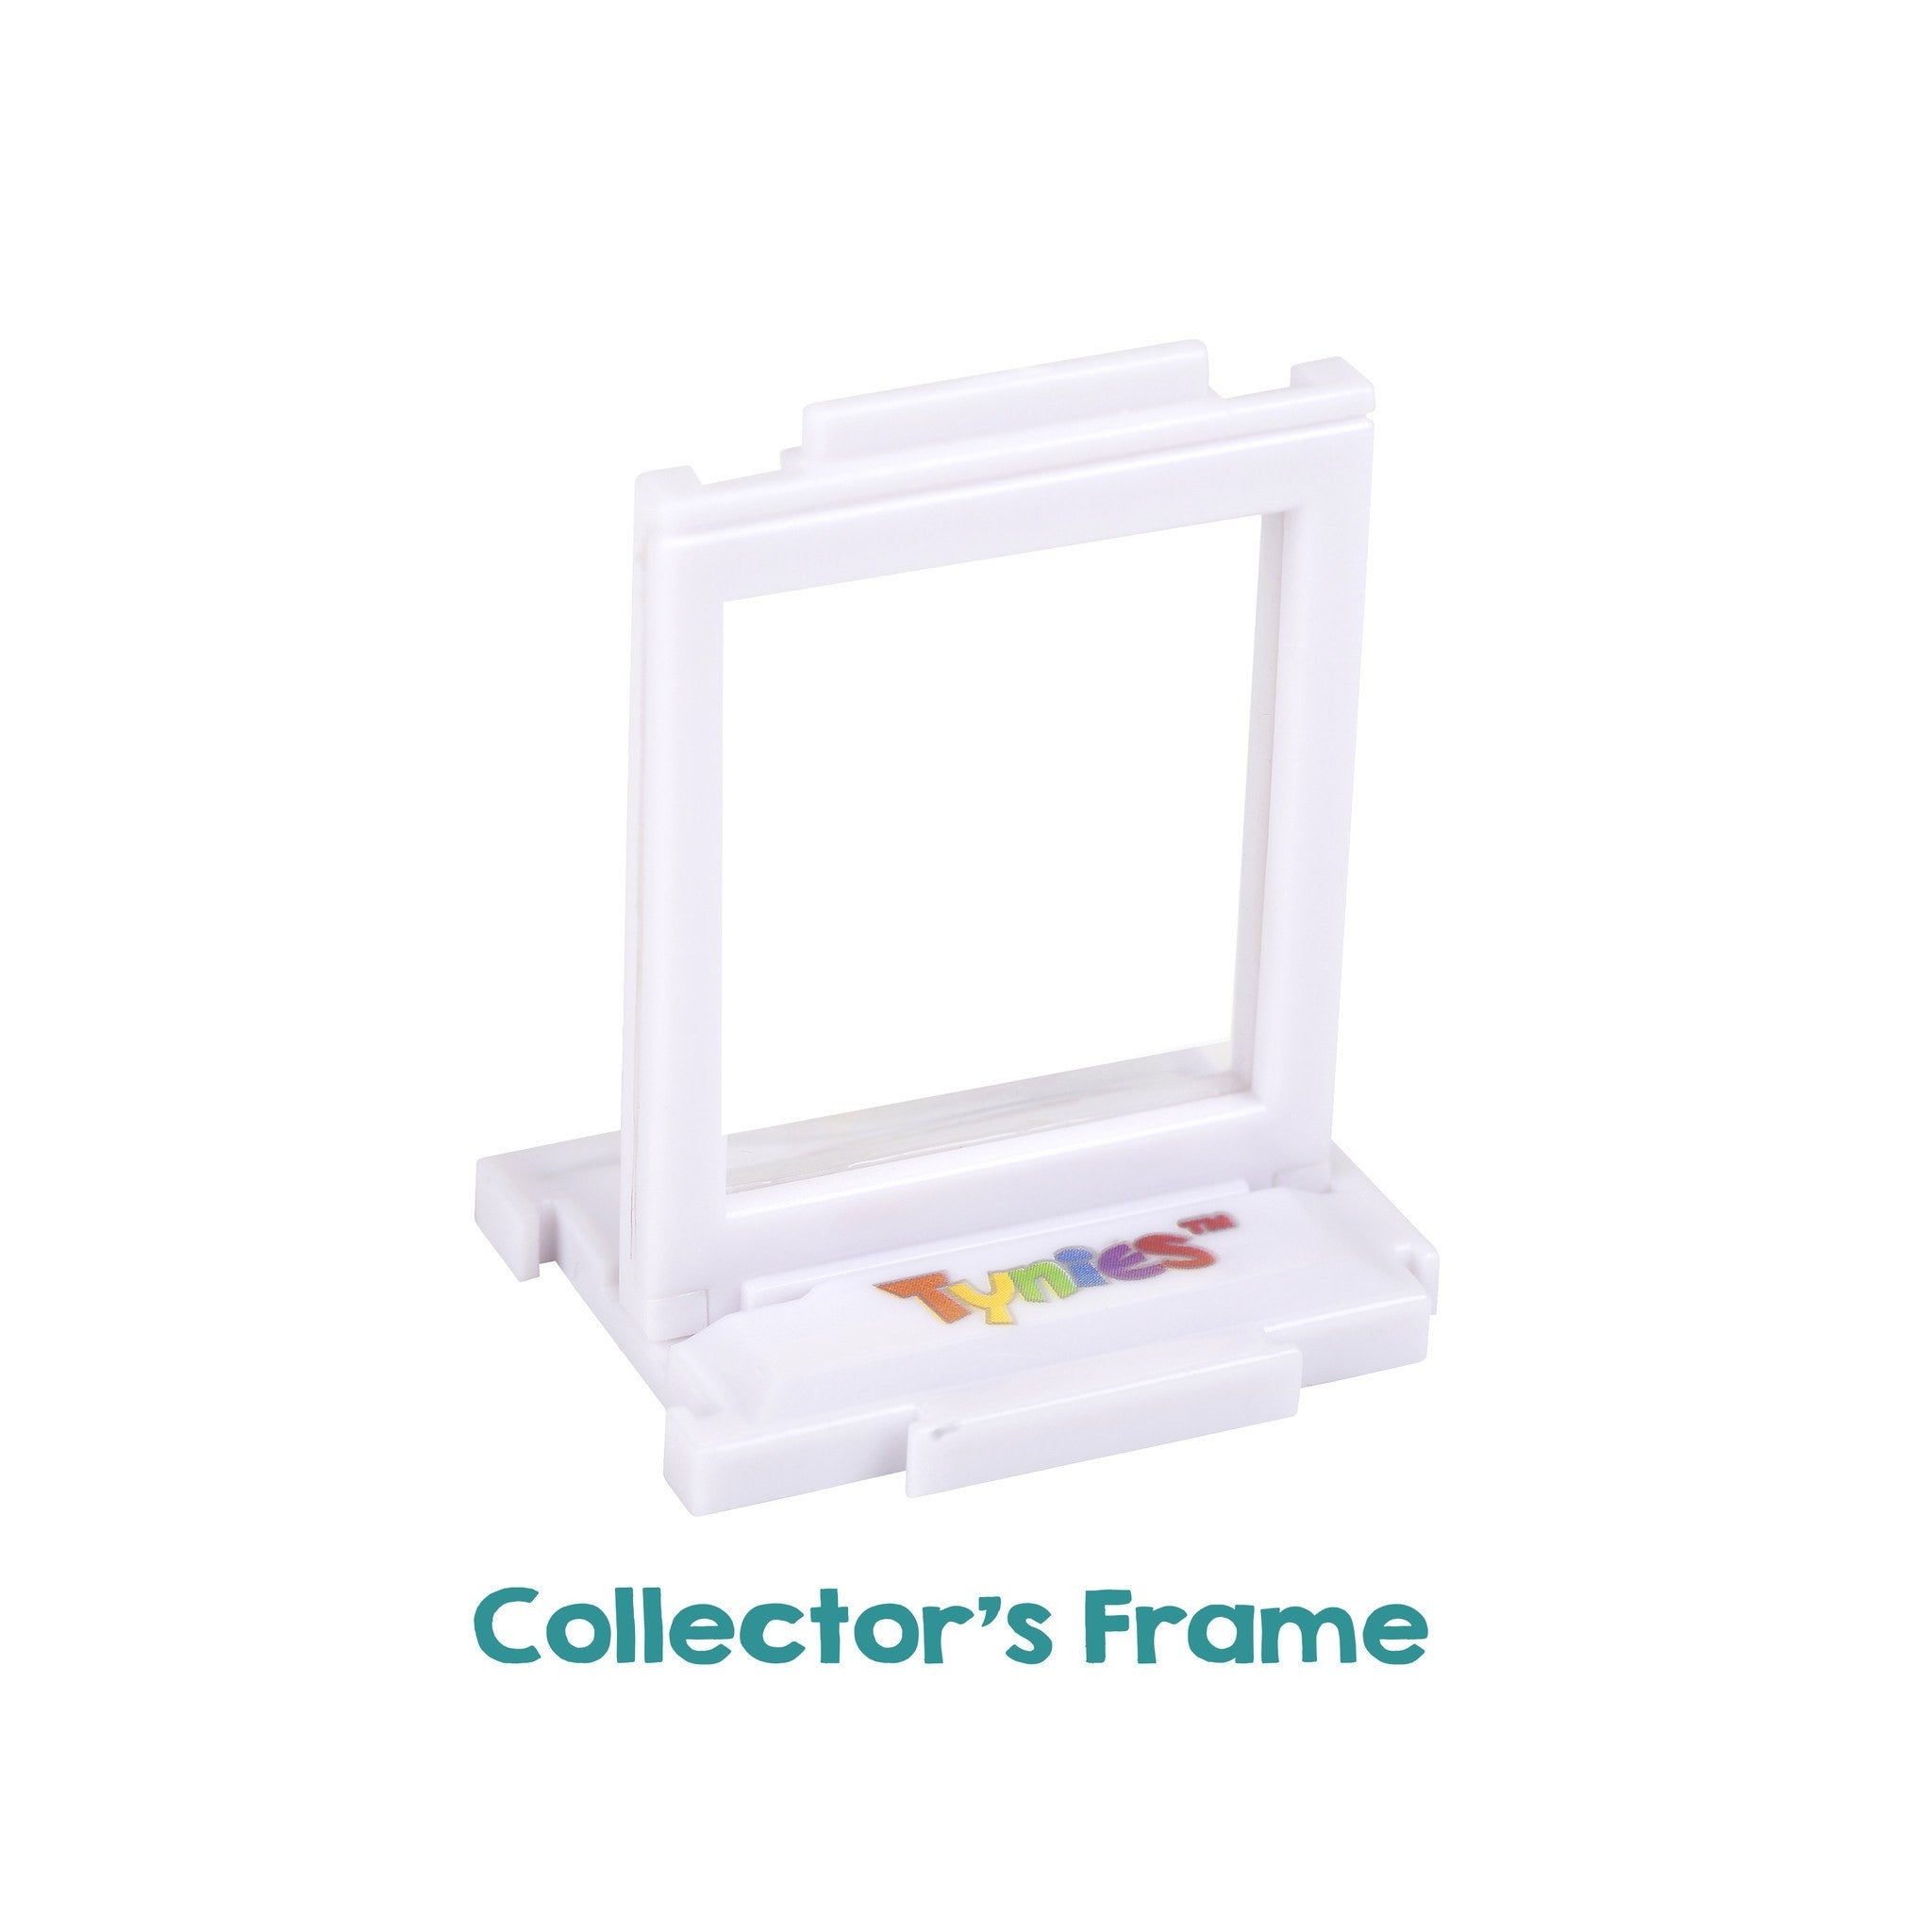 Collector's Frame Miniature glass figurines